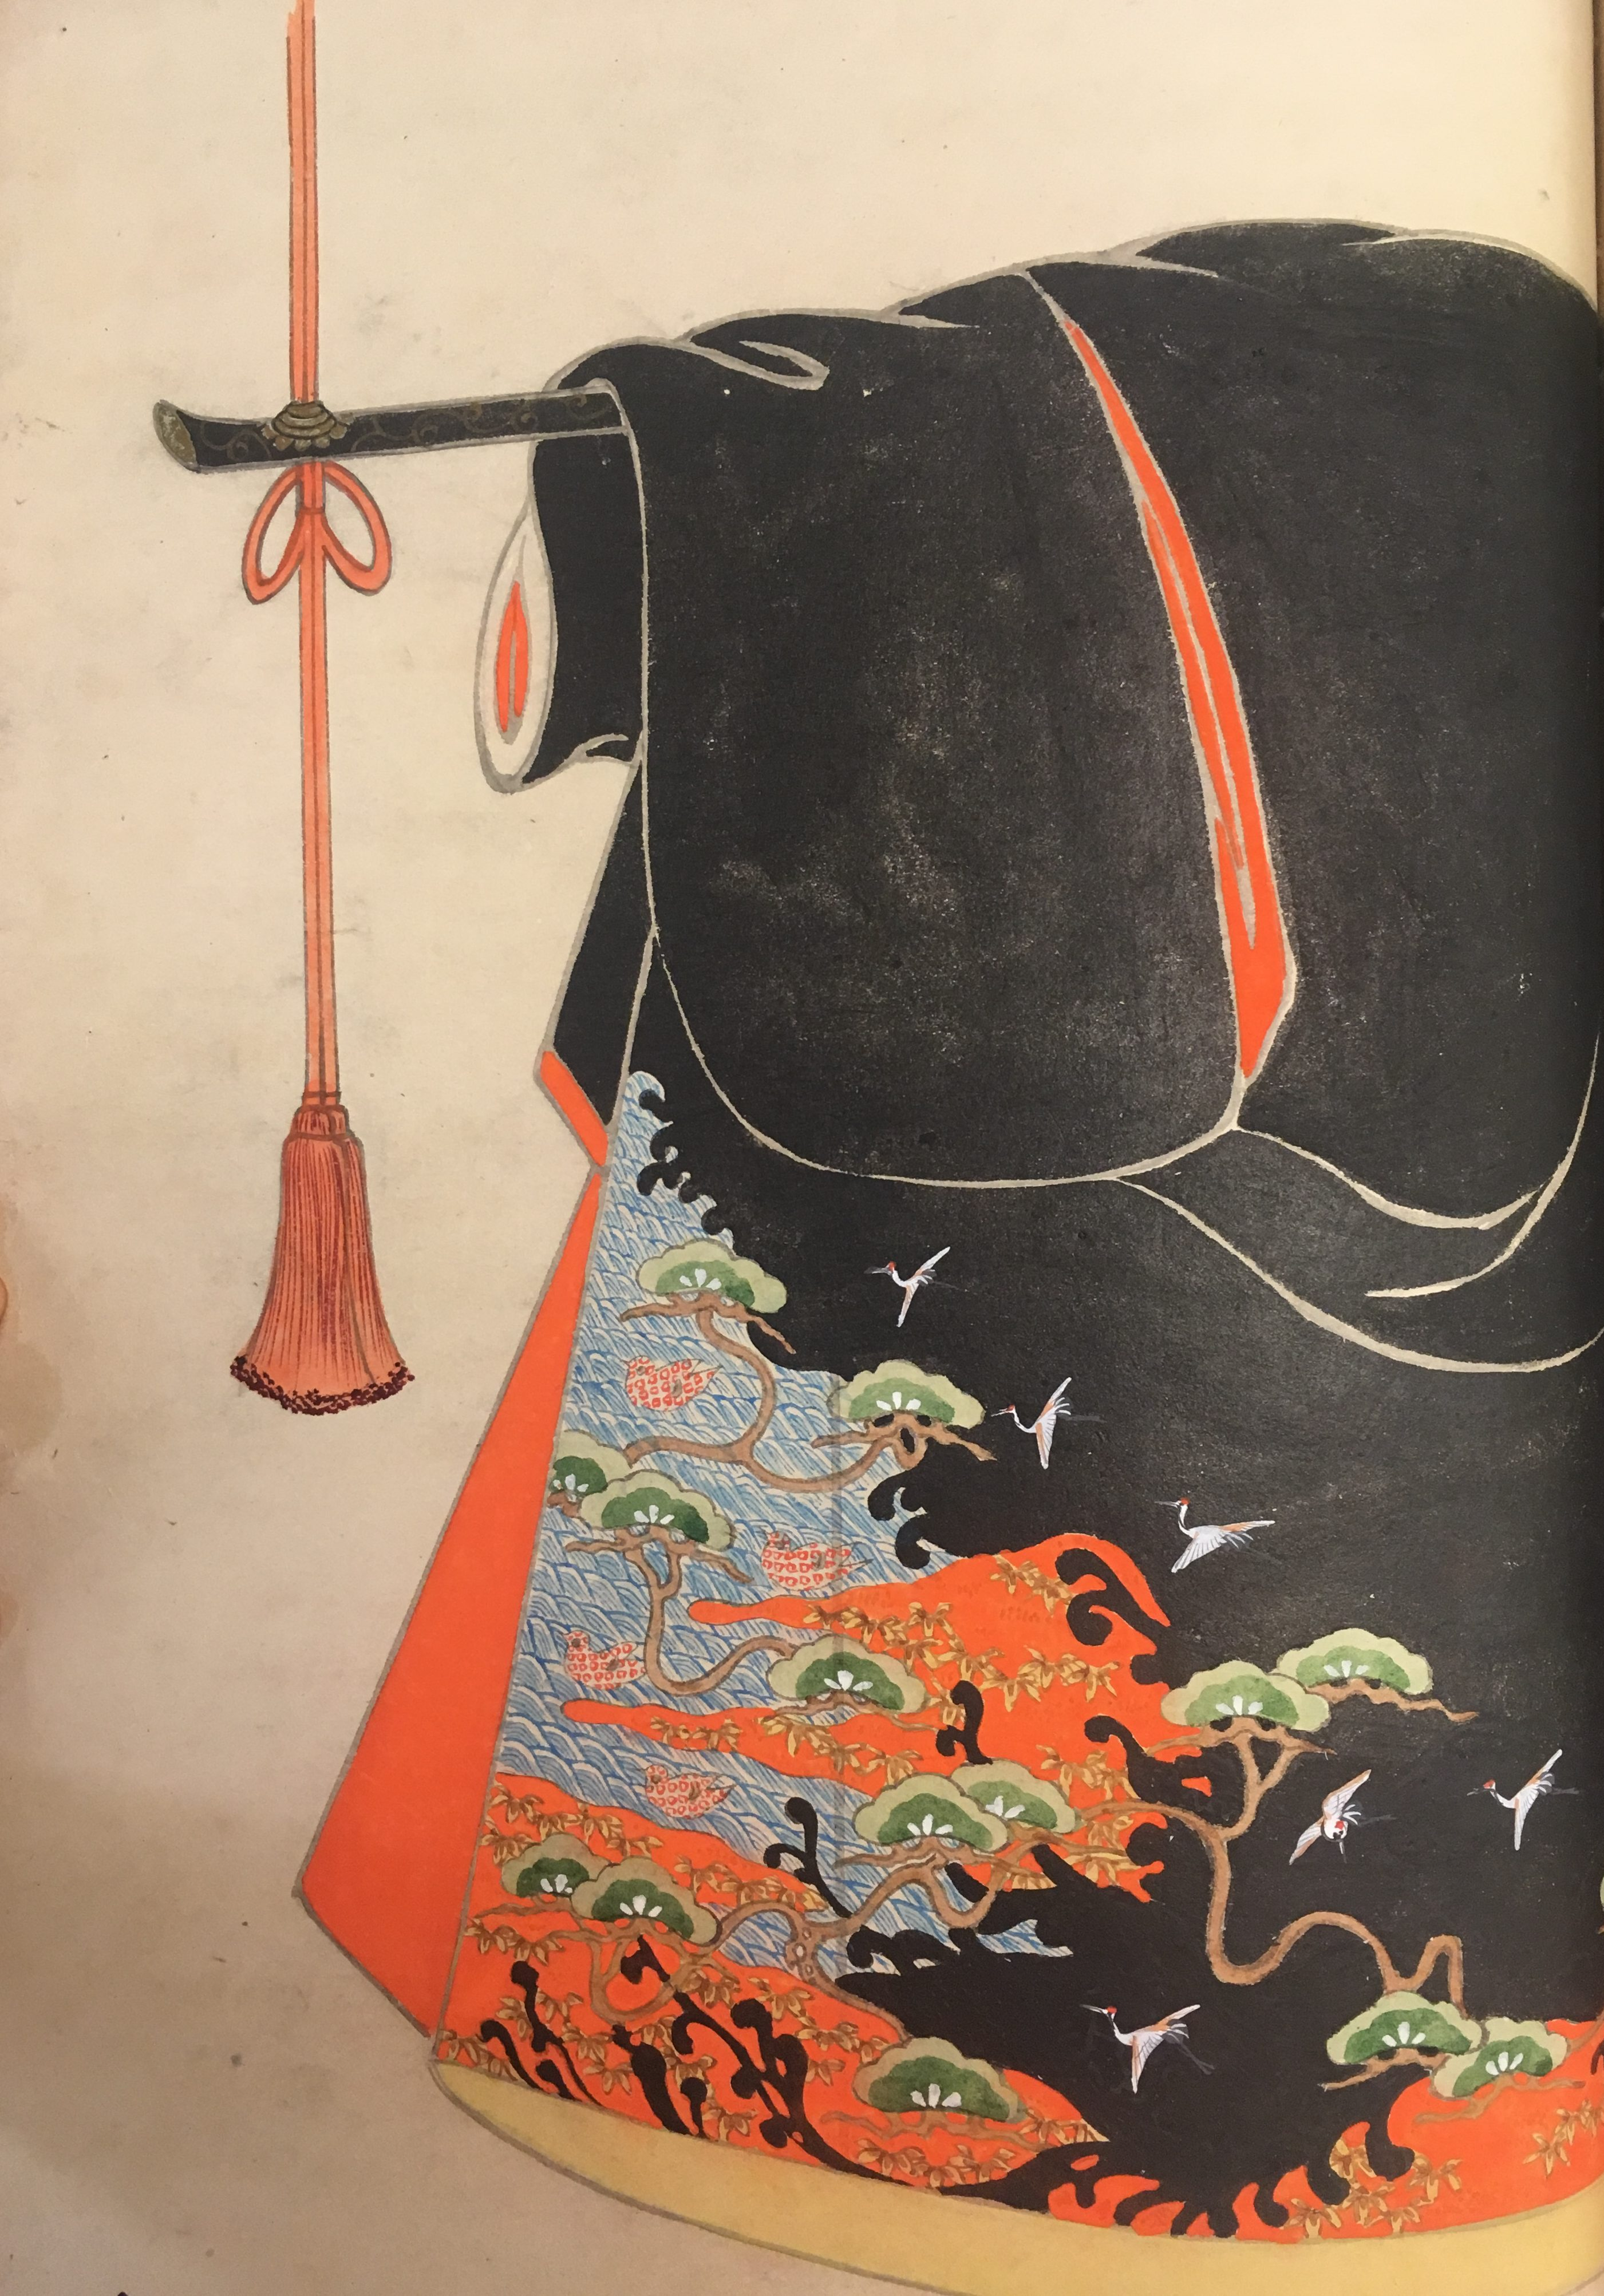 A black kimono with red-orange and tan interior. The black background bleeds into the tangle of trees, red-and-brown foliage, water, and herons.